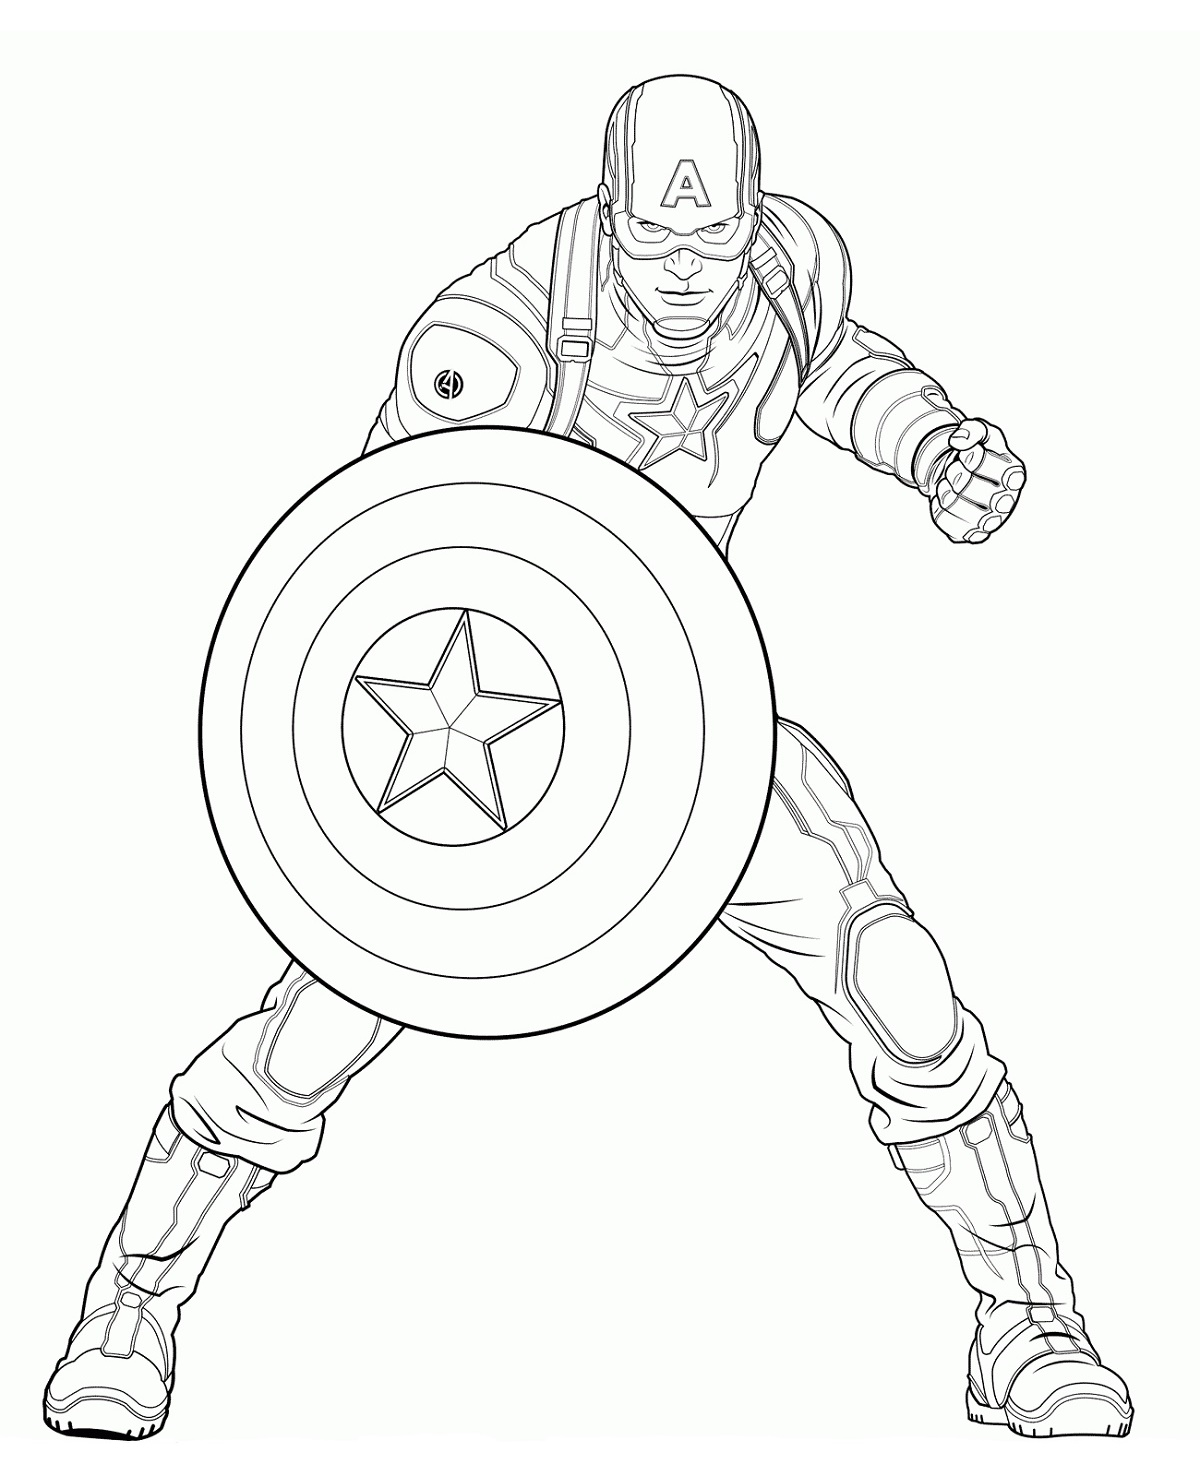 Captain America Shield Coloring Page For The Fans